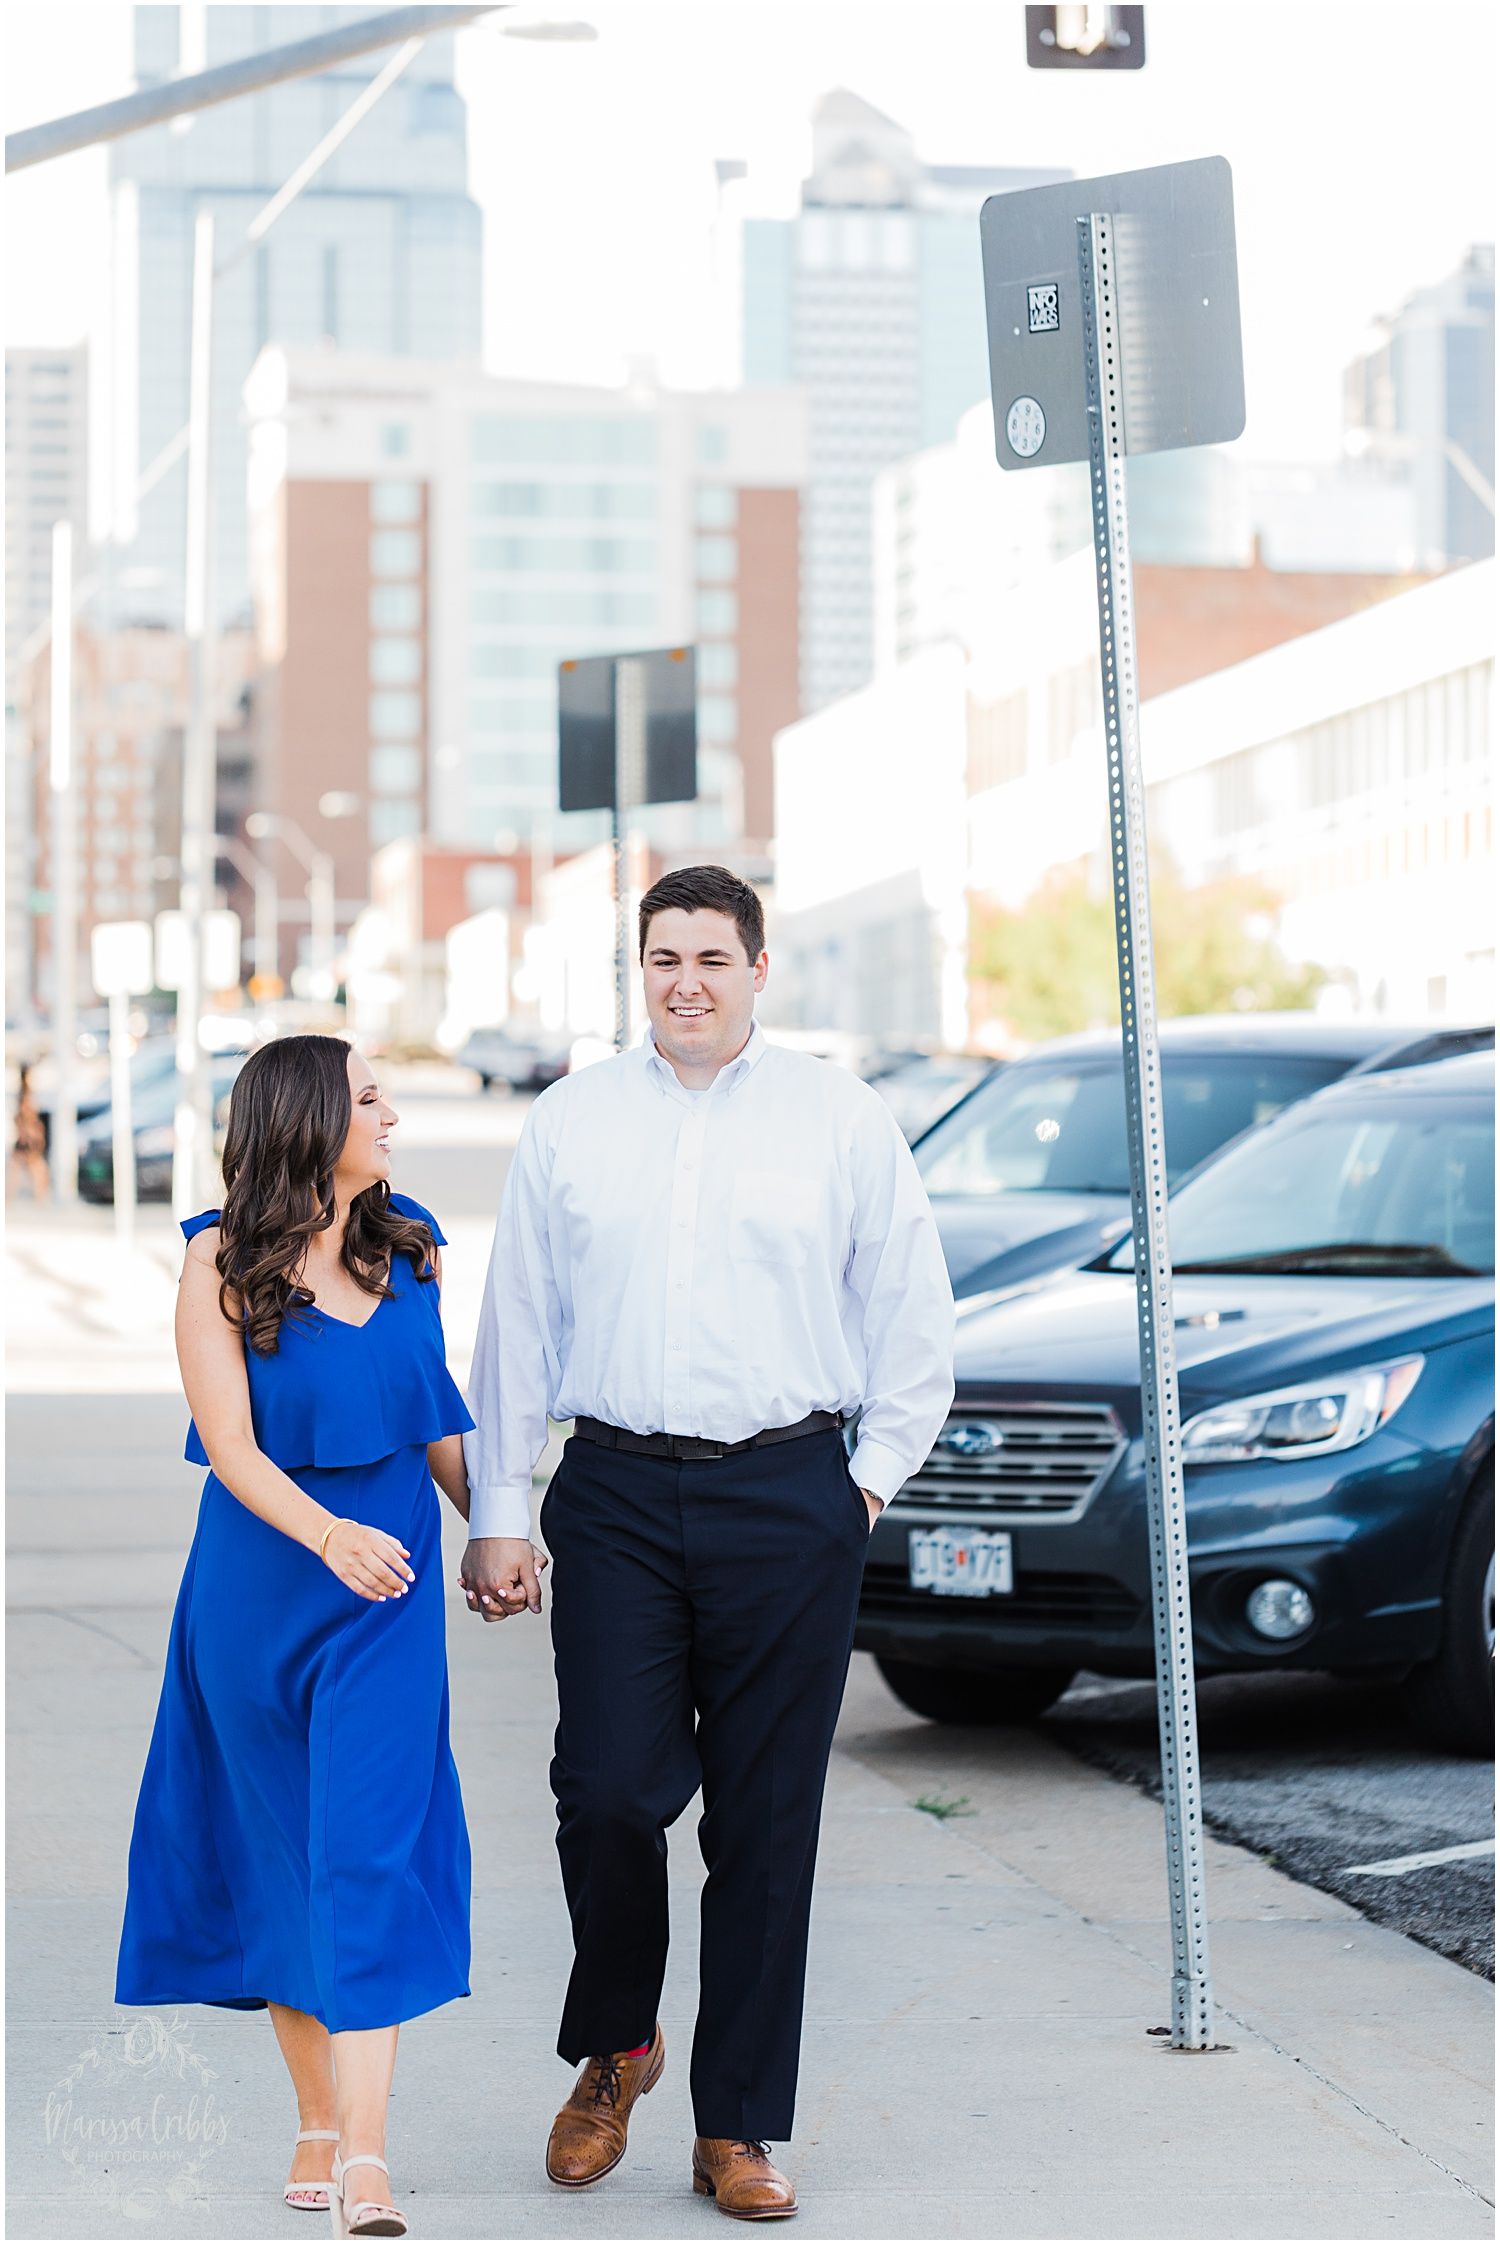 MORGAN & KEVIN ENGAGEMENT BLOG | MARISSA CRIBBS PHOTOGRAPHY_8280.jpg